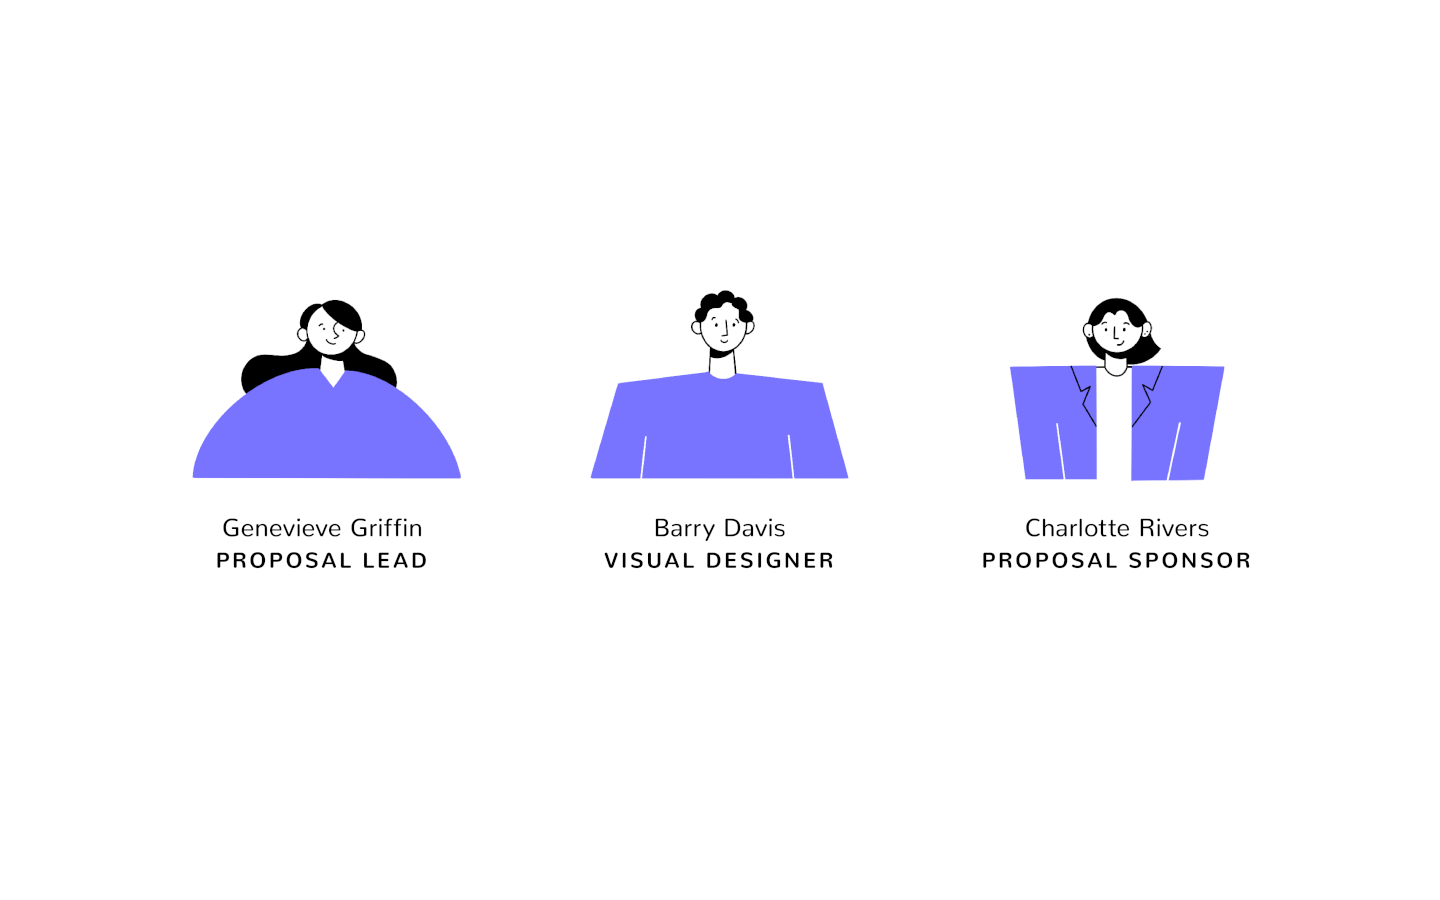 illustration of proposal team members